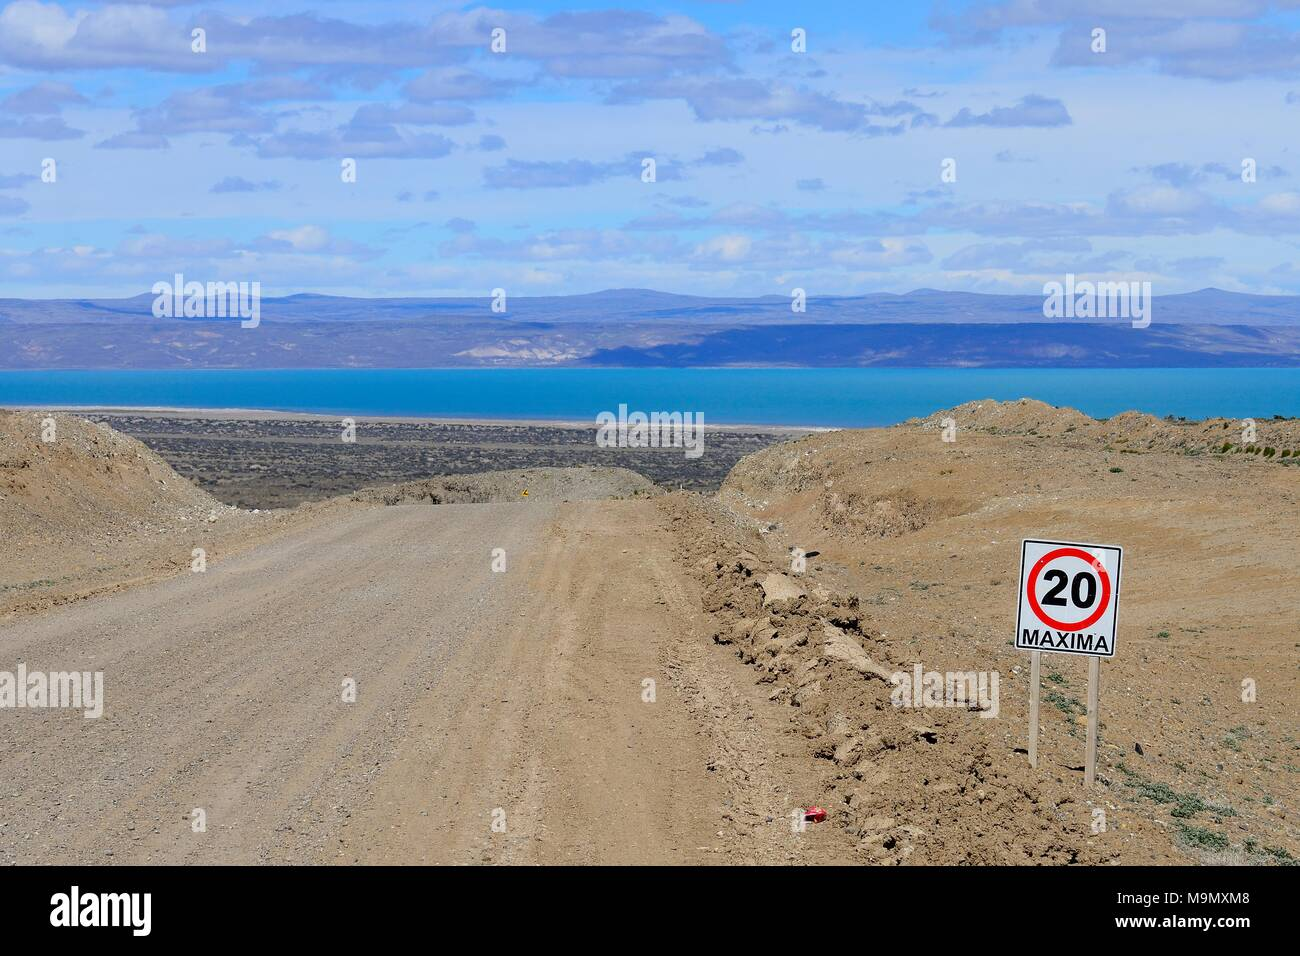 Gravel road Ruta 40 with speed limit 20 Km/h, behind Lago Cardiel and Andes, near Perito Moreno, province Santa Cruz, Patagonia - Stock Image